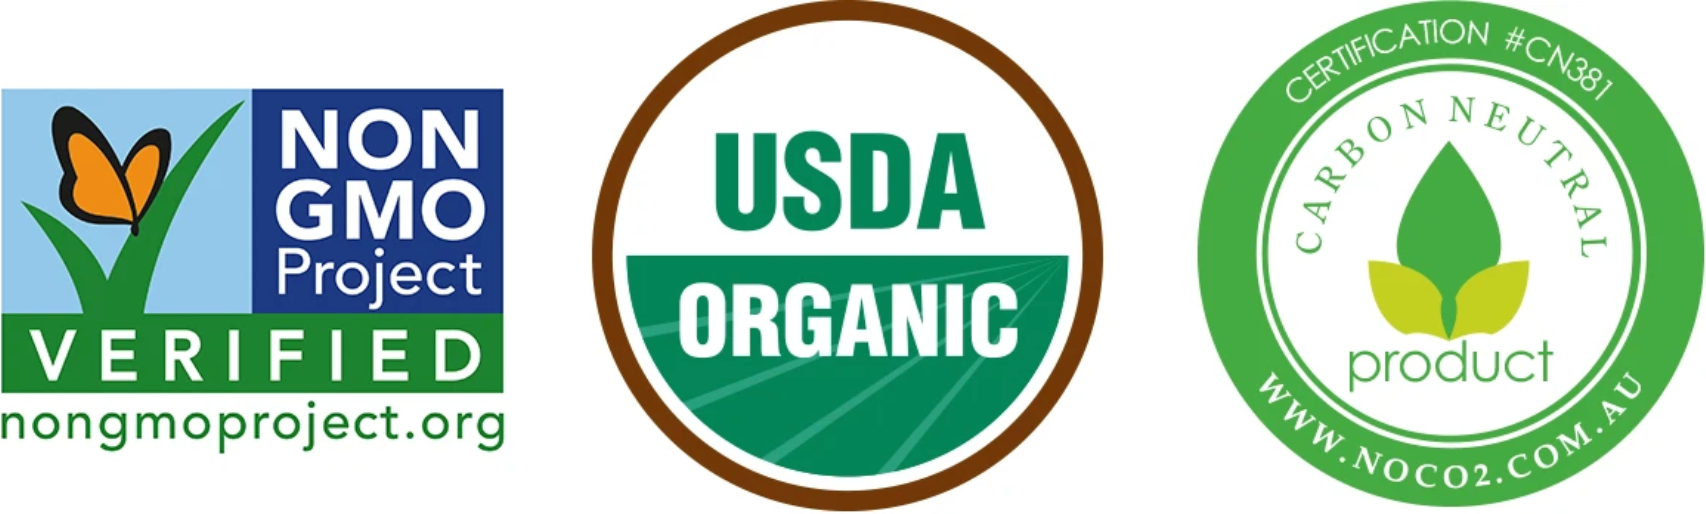 Organic Grass-fed Chuck Roast non-gmo project verified usda organic carbon neutral animal welfare Certifications